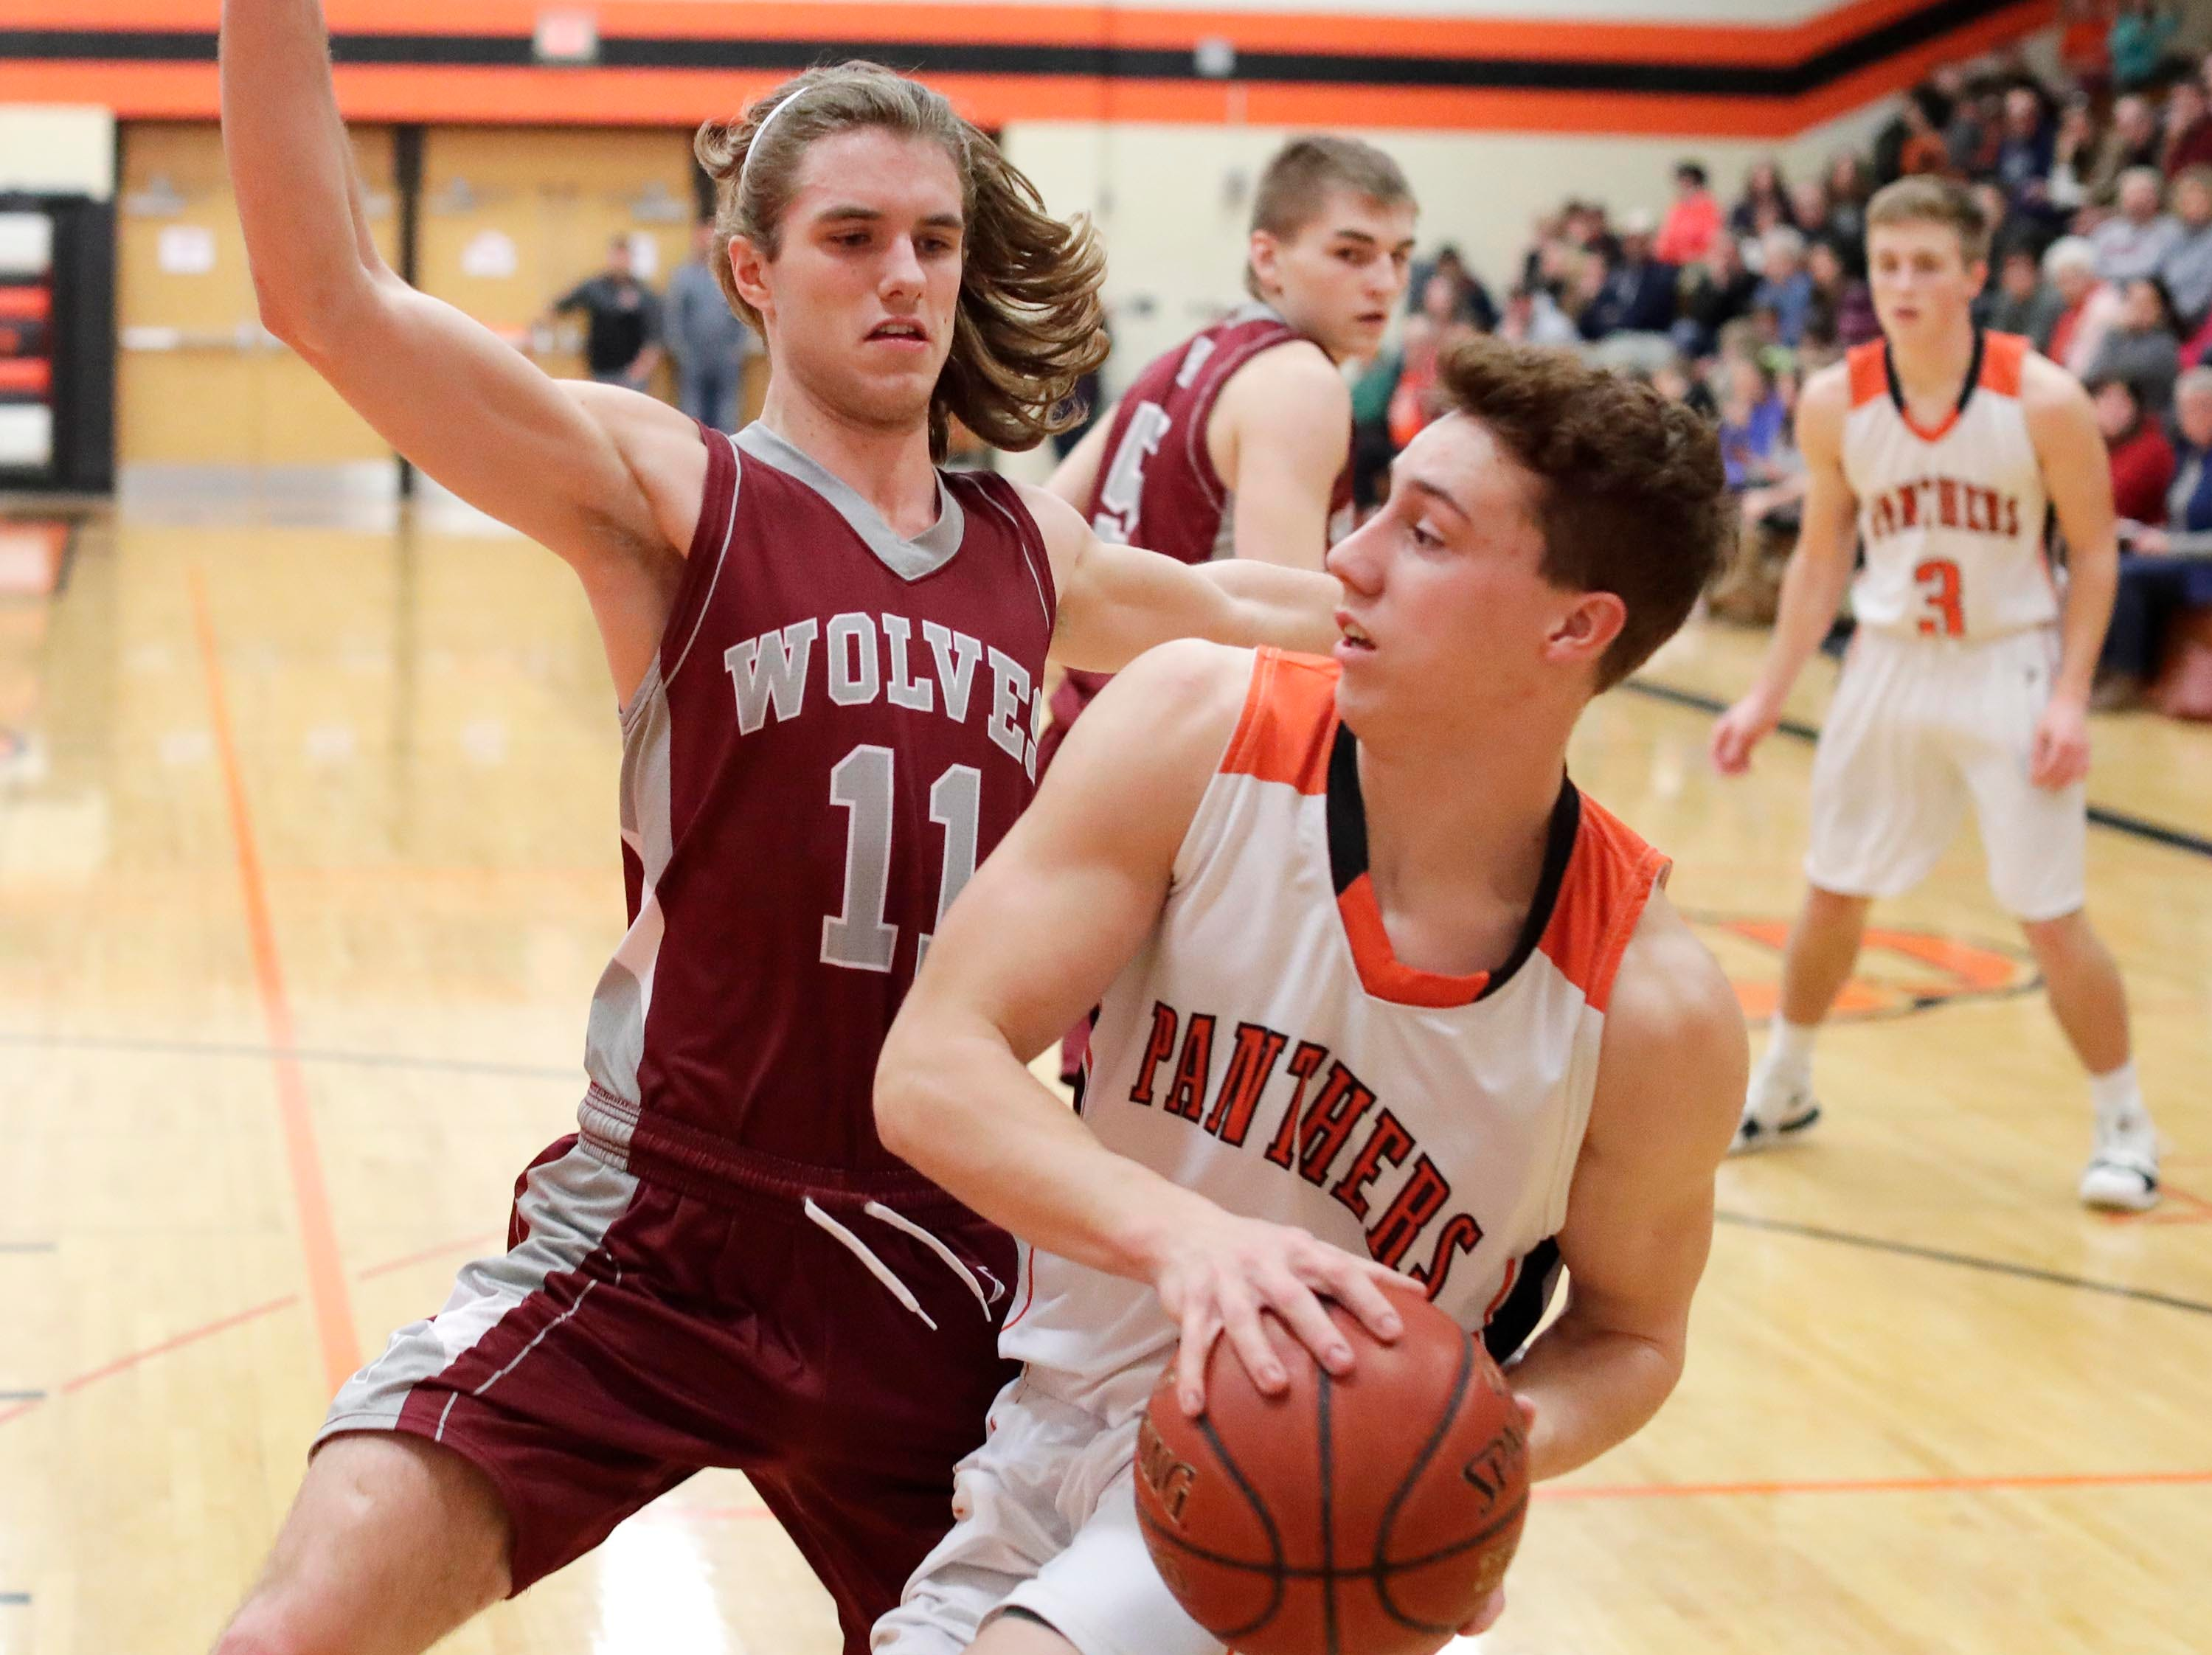 Plymouth's Sam Shutter (5) drives the ball by Winneconne's Marshall Scheider (11), Wednesday, February 21, 2019, in Plymouth, Wis.